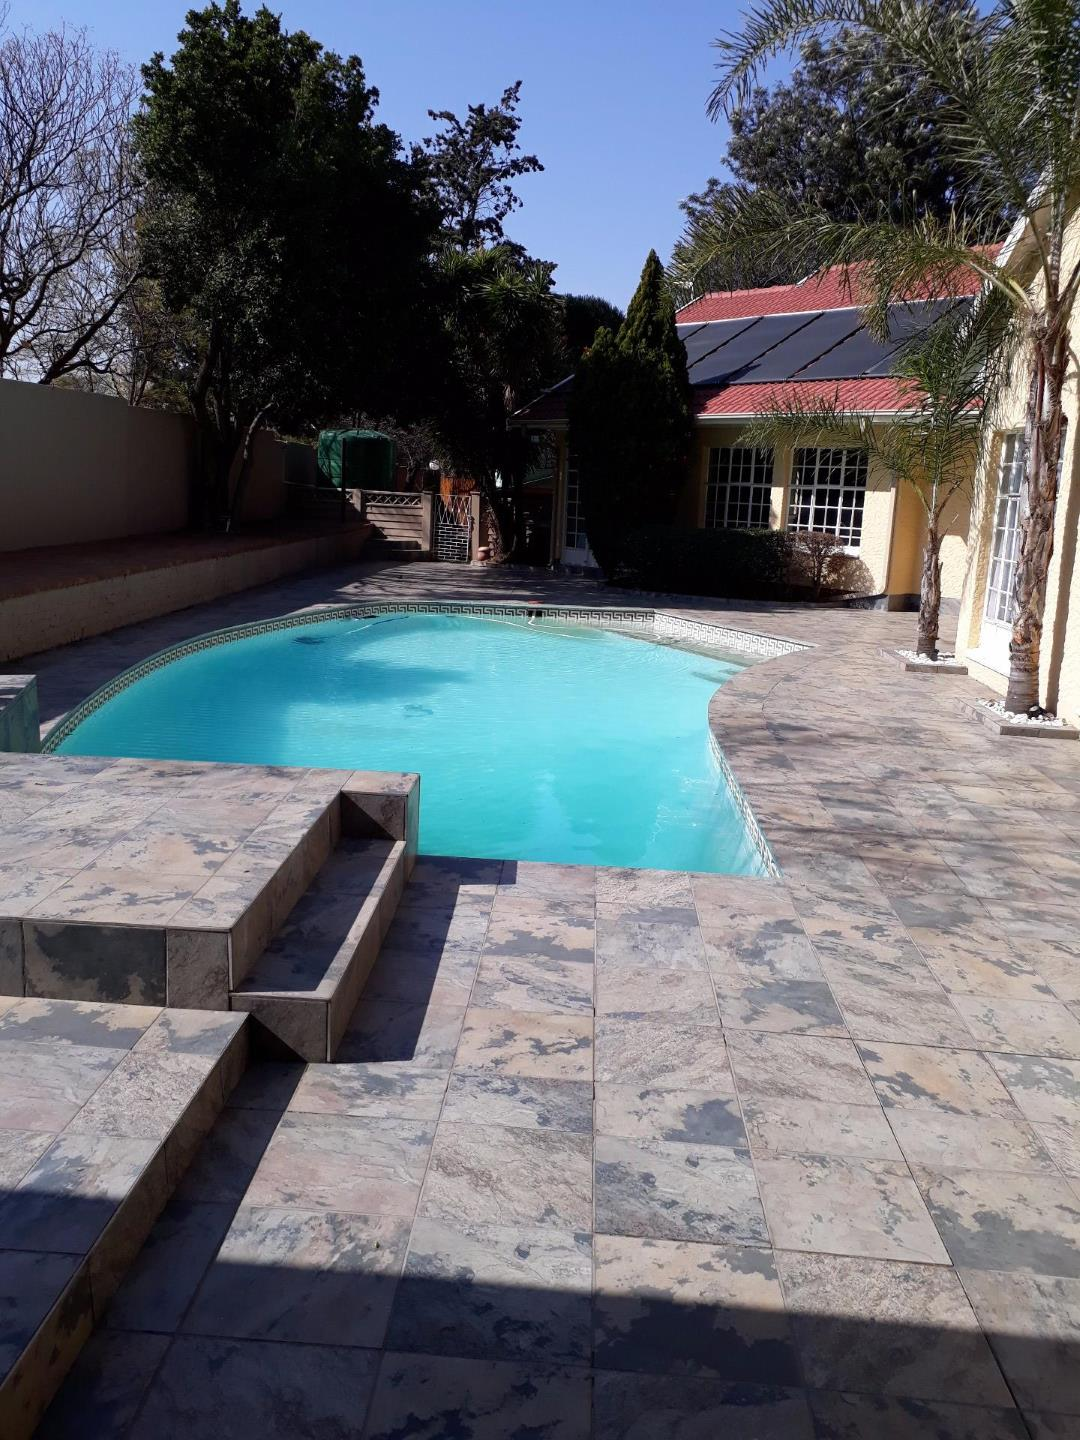 Johannesburg, Meredale Property  | Houses For Sale Meredale, Meredale, House 5 bedrooms property for sale Price:2,250,000